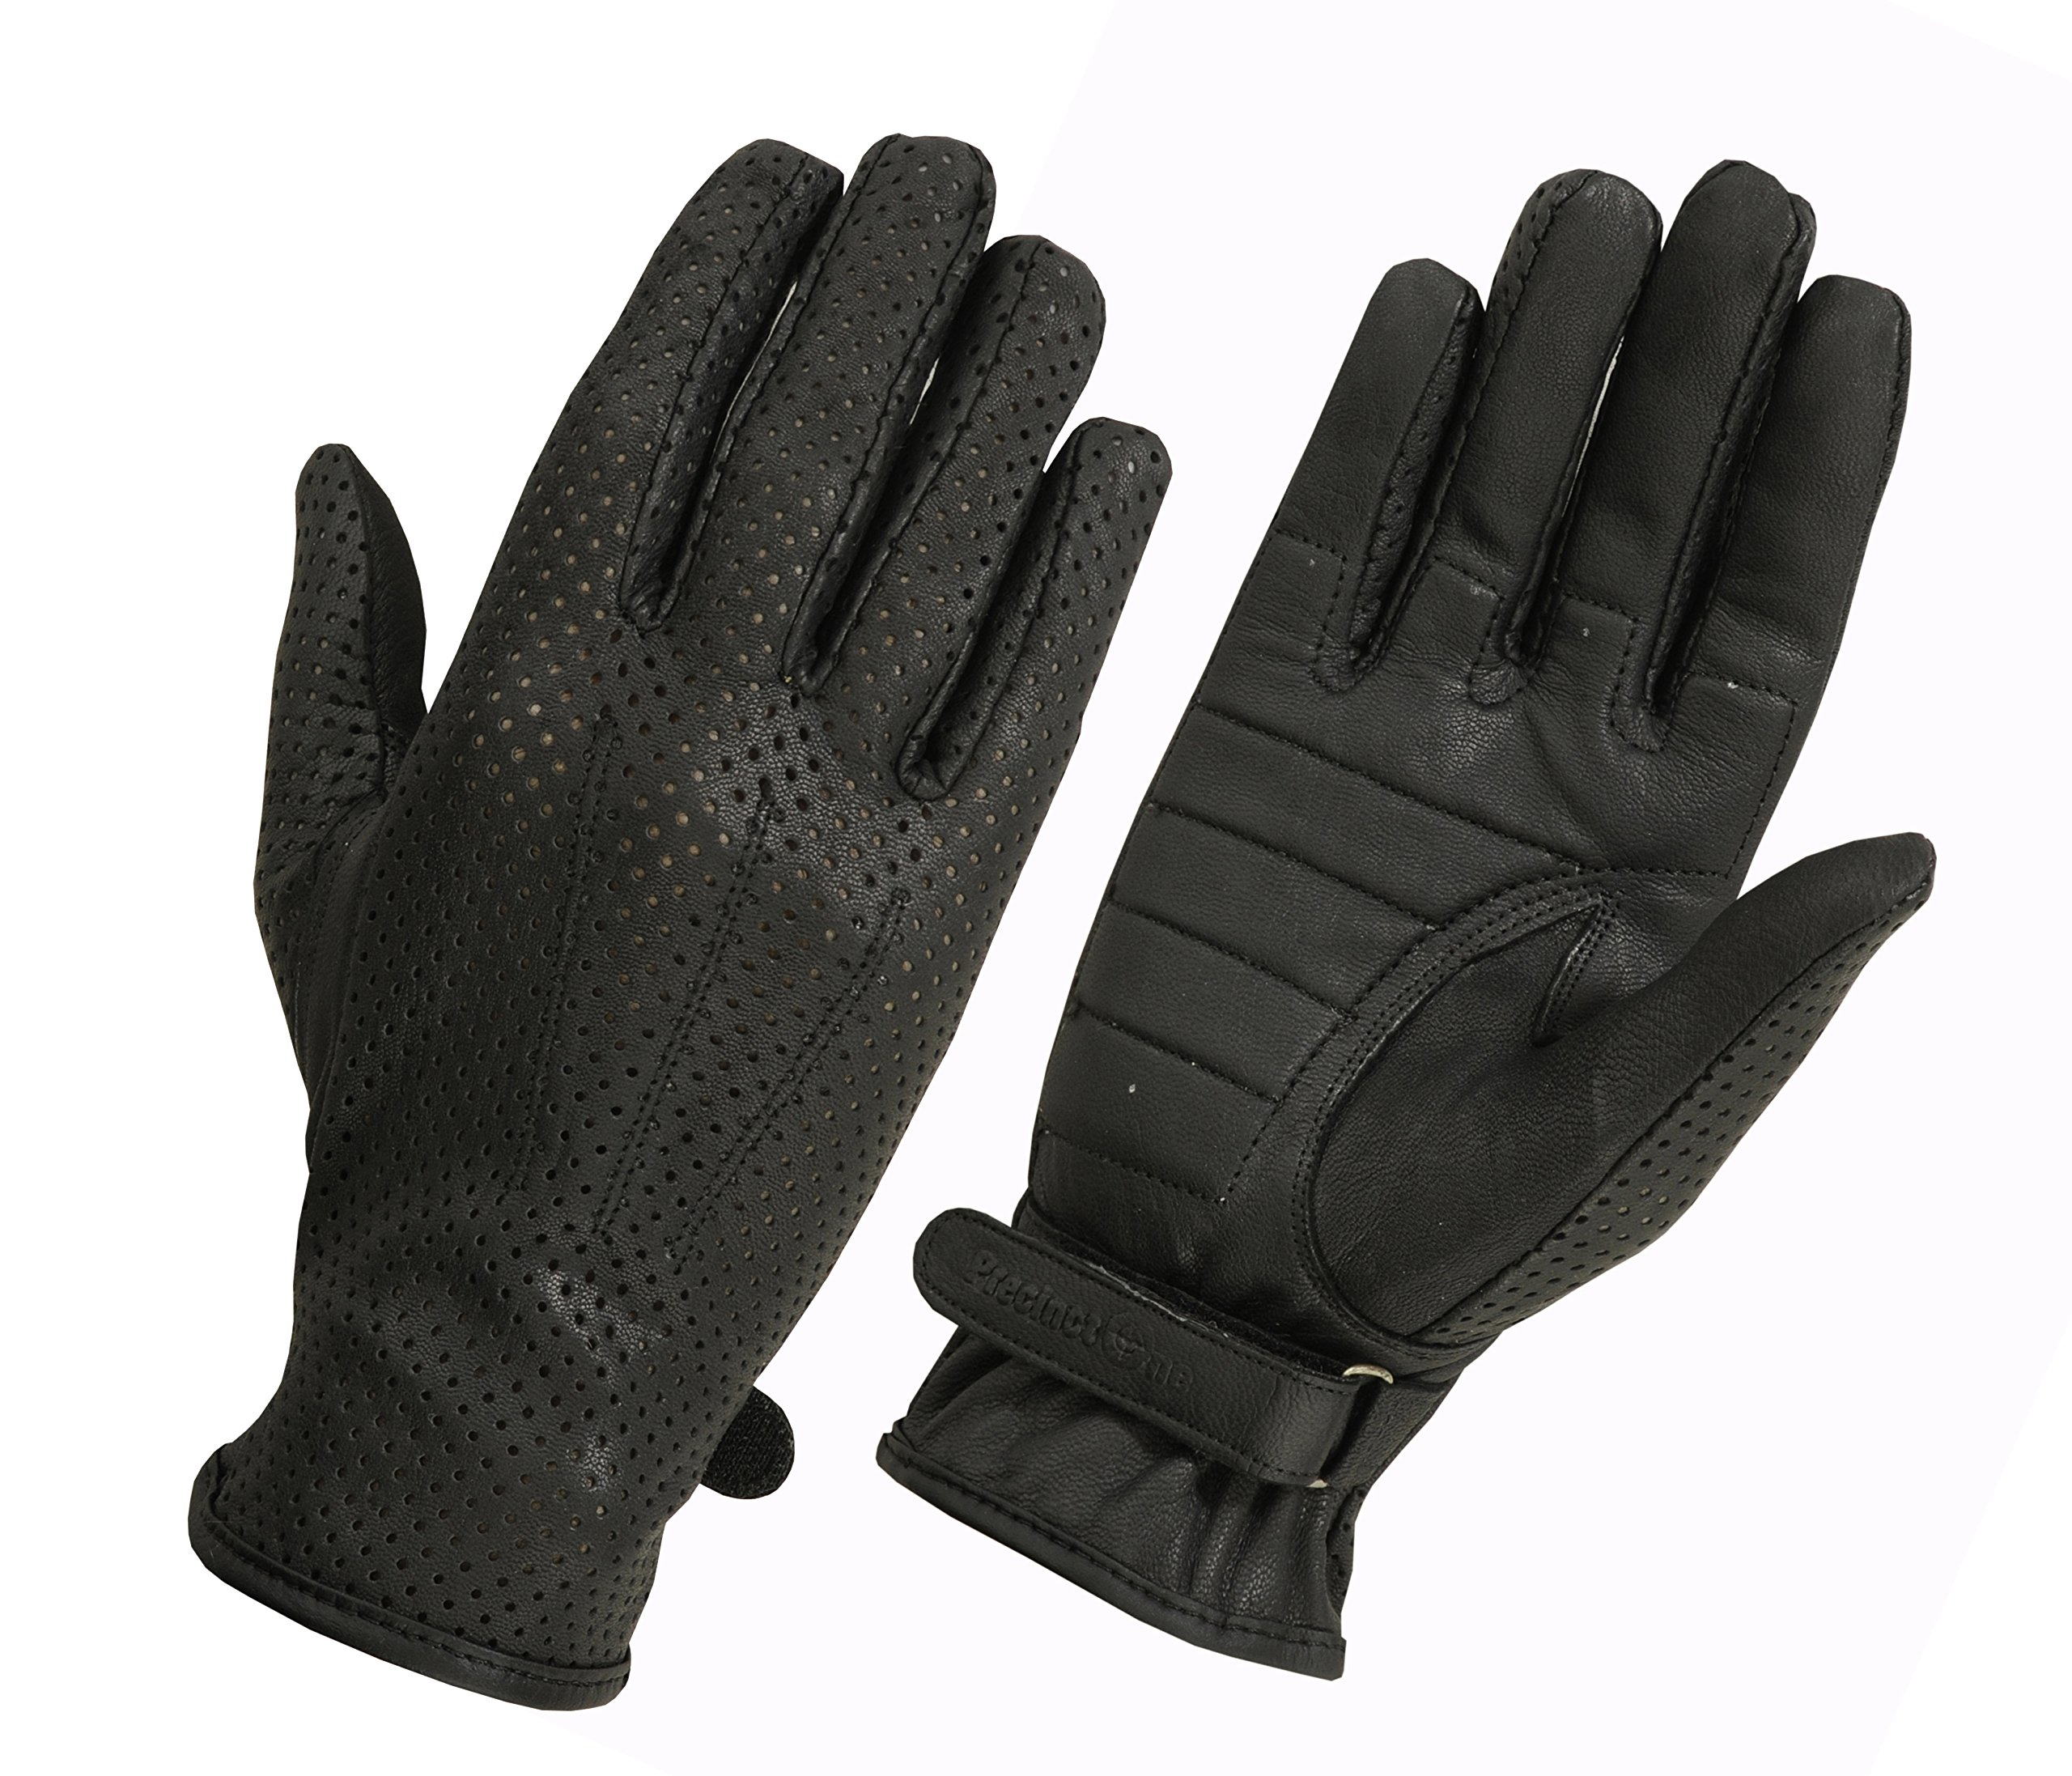 Ladies Weatherlite Water Resistance Leather Driving, Police, and Motorcycle Glove (Medium, Black)